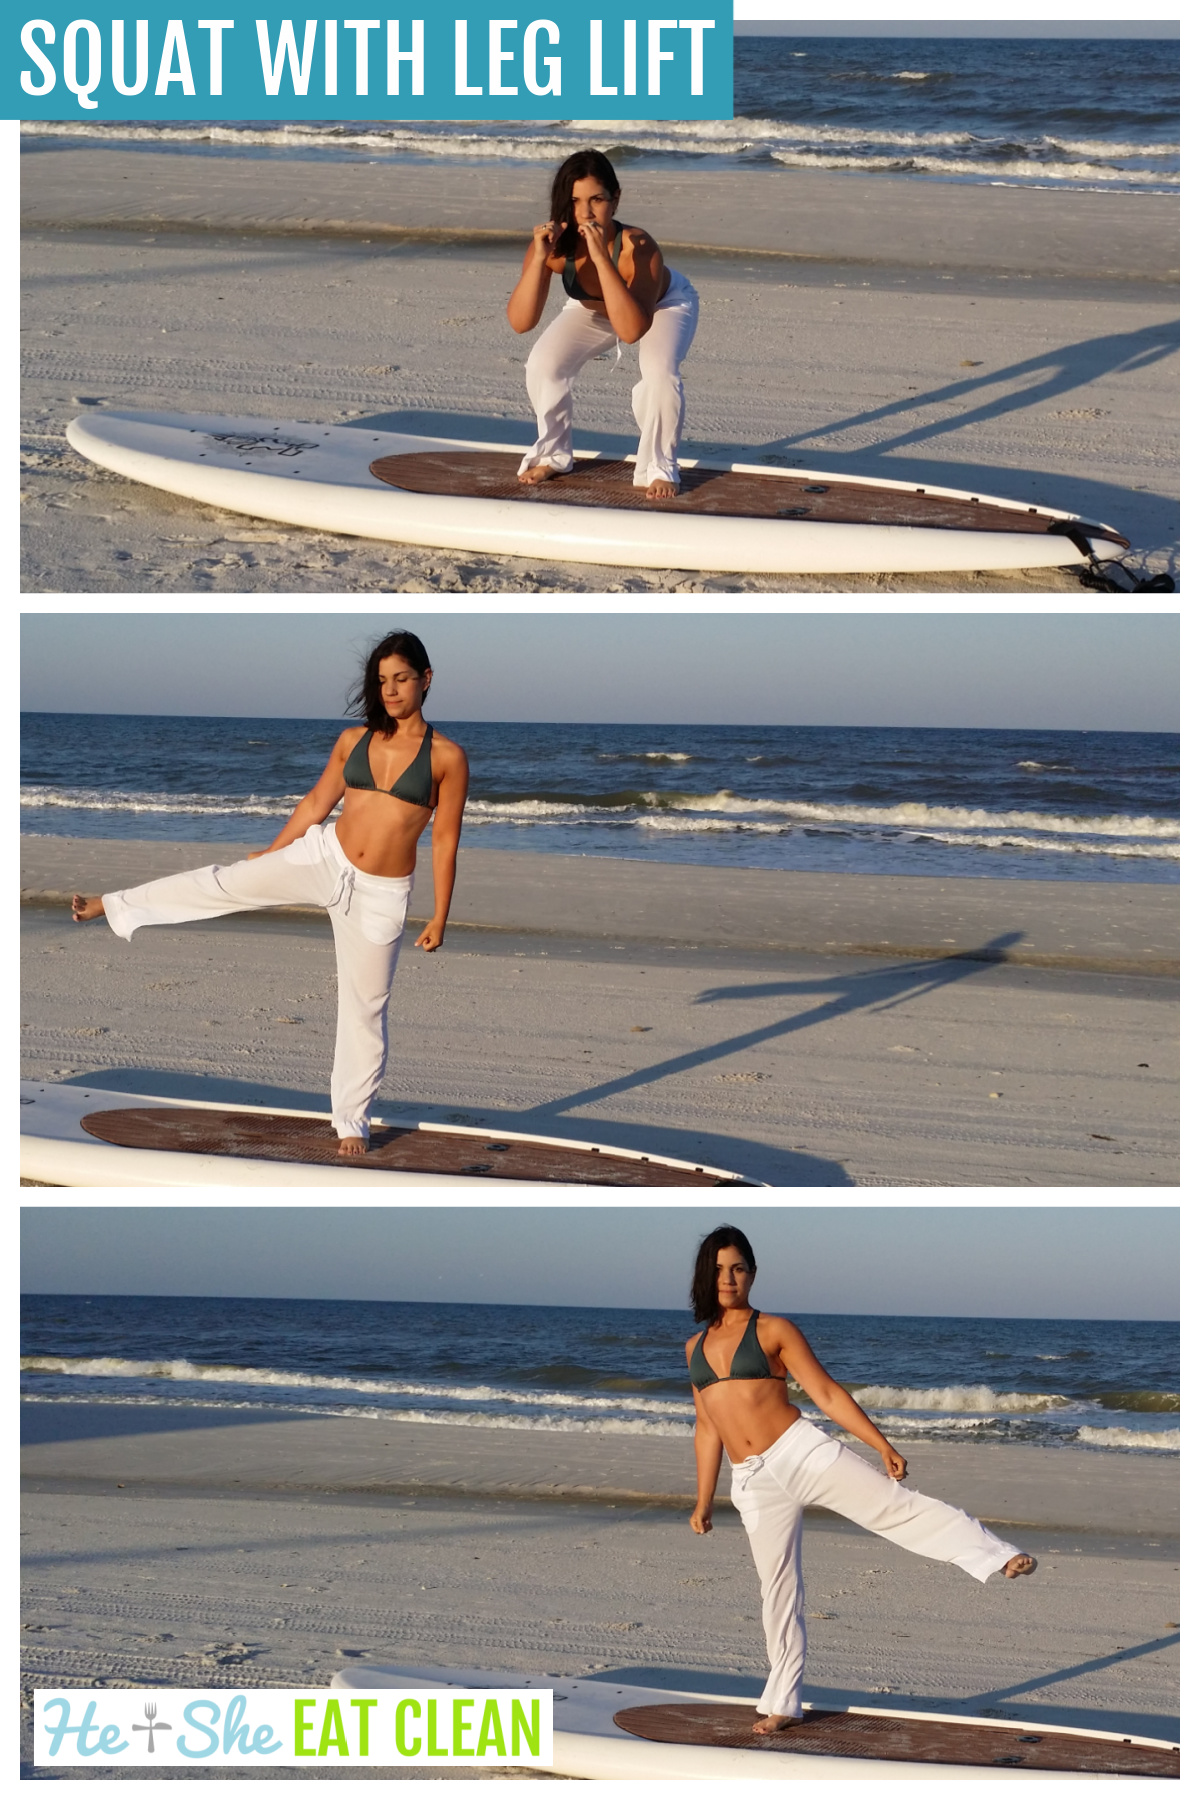 collage of 3 images of a female in a swimsuit top doing a squat on a paddleboard